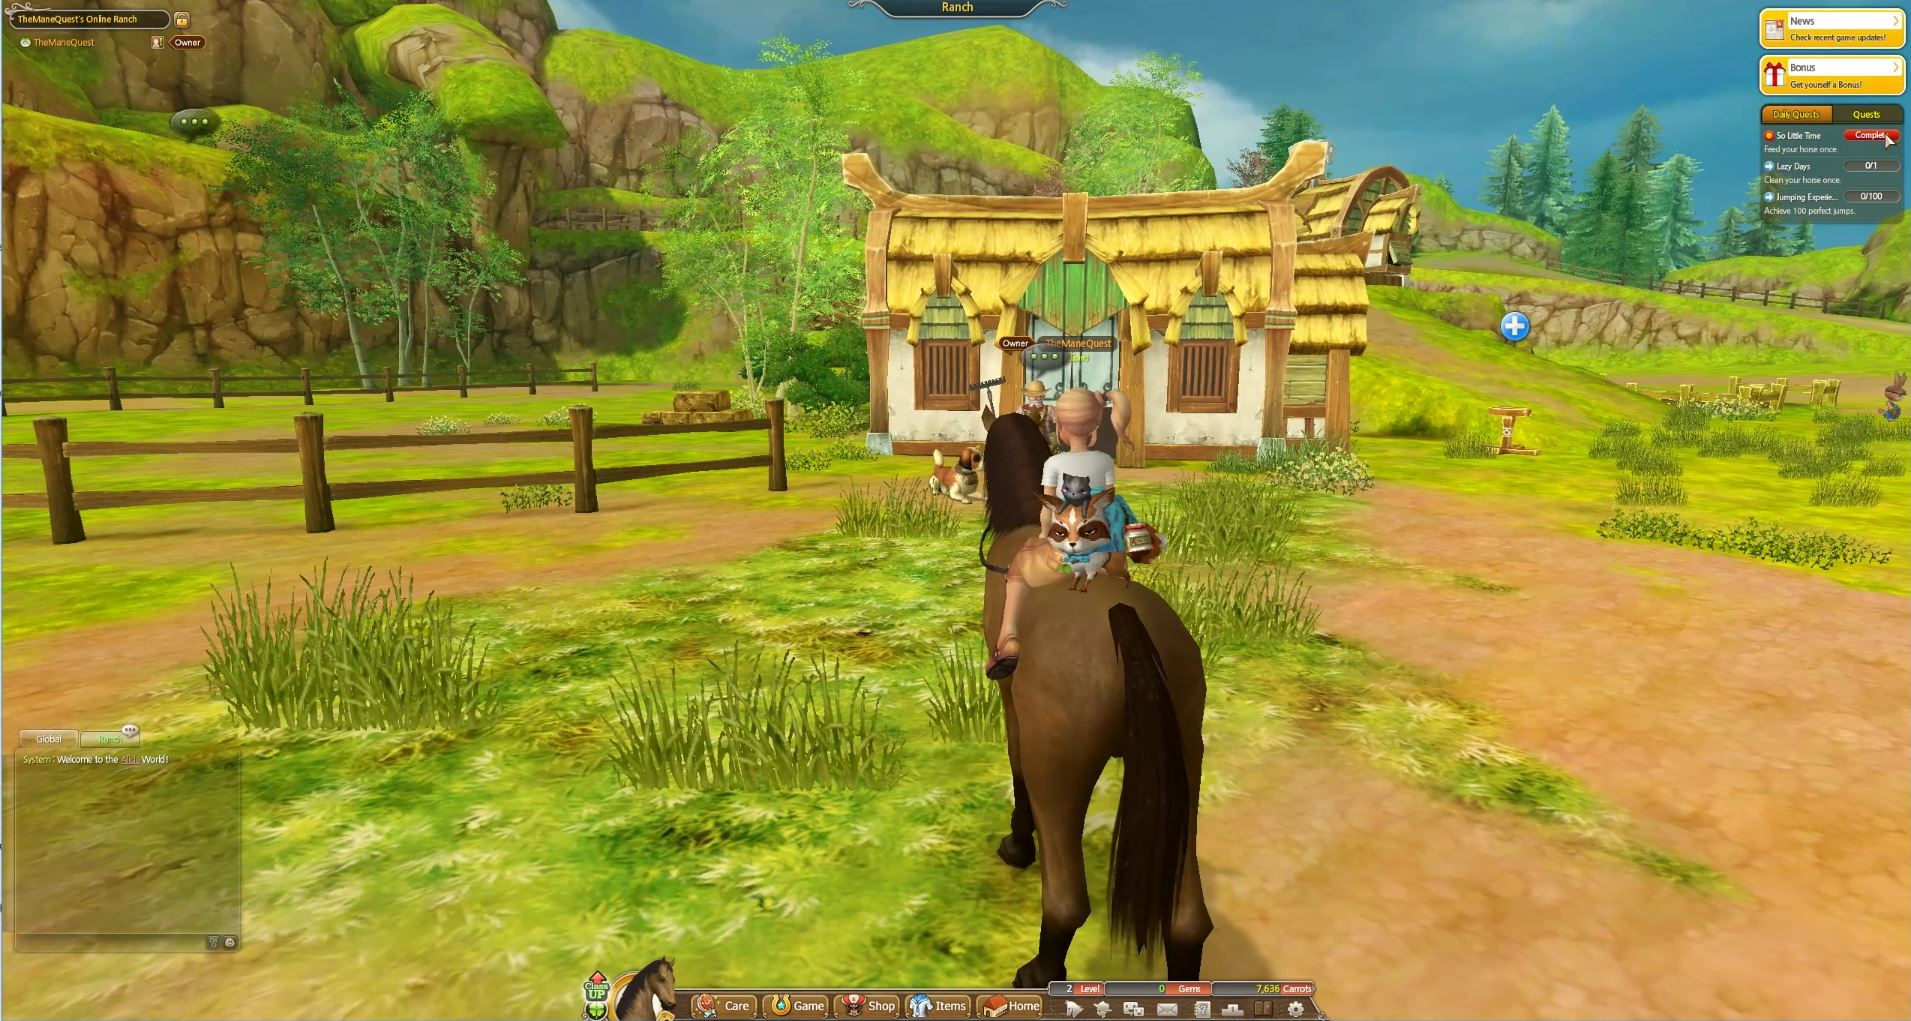 My Ranch in Alicia Online